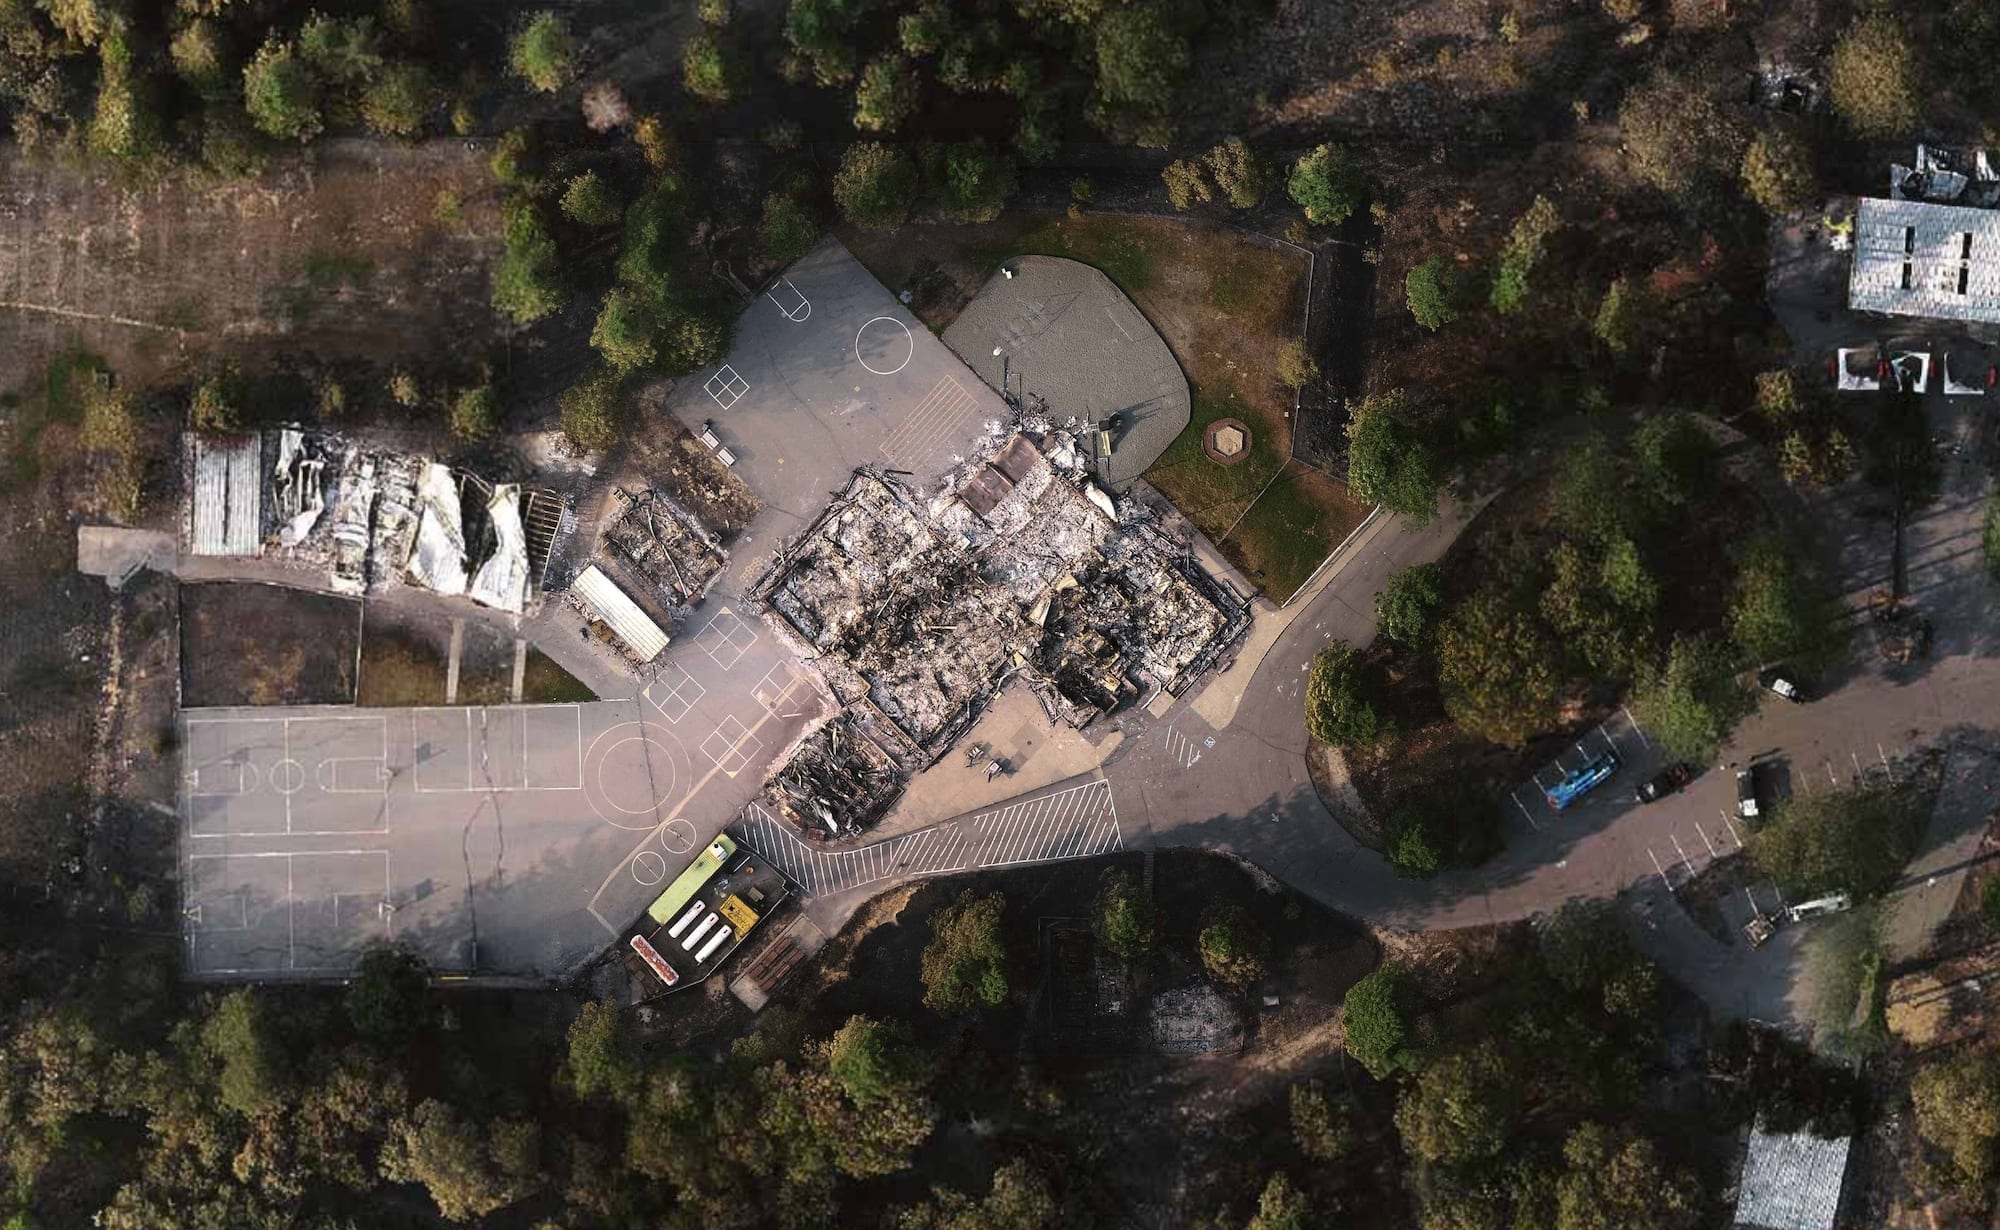 Drone imagery helps tell story of Berry Creek and devastating North Complex Fire